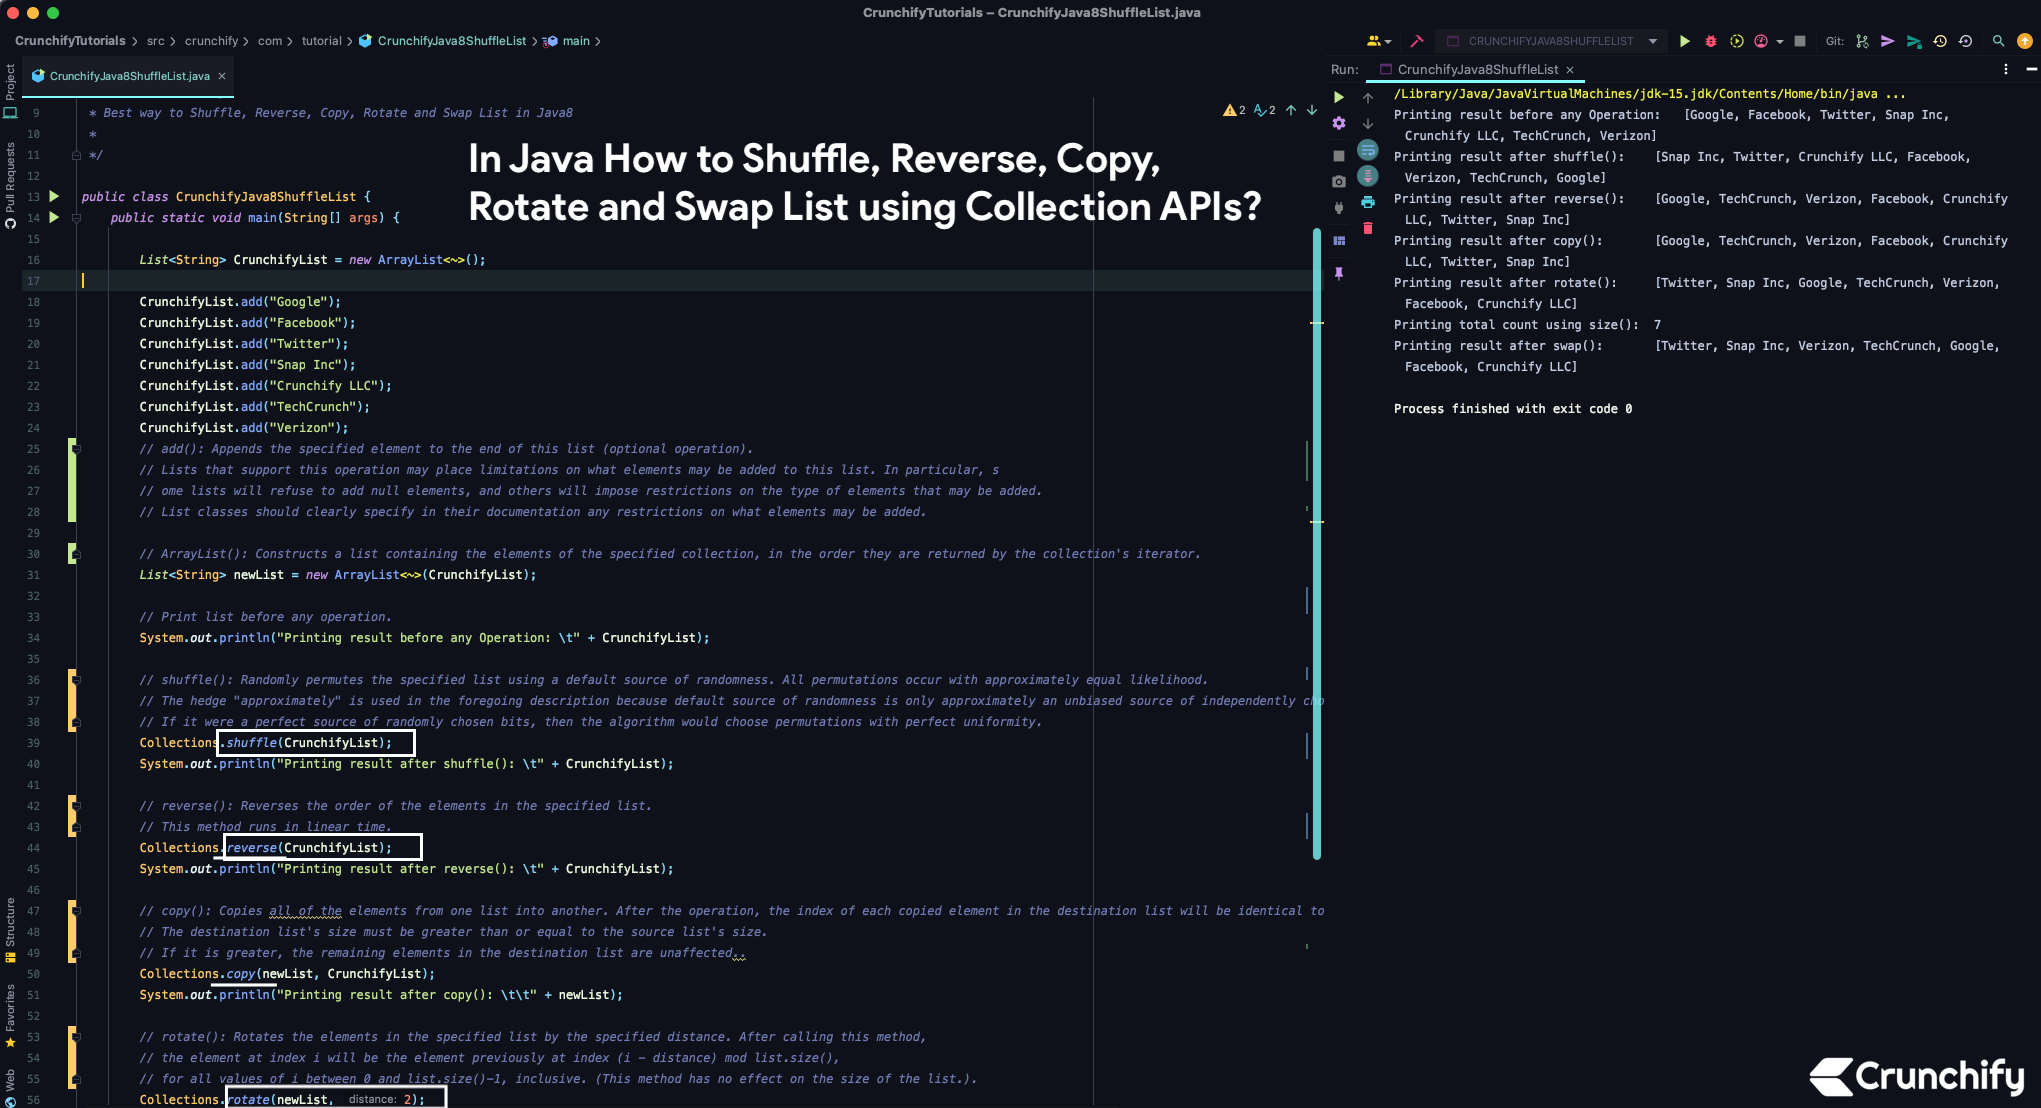 In Java How to Shuffle, Reverse, Copy, Rotate and Swap List using Collection APIs?